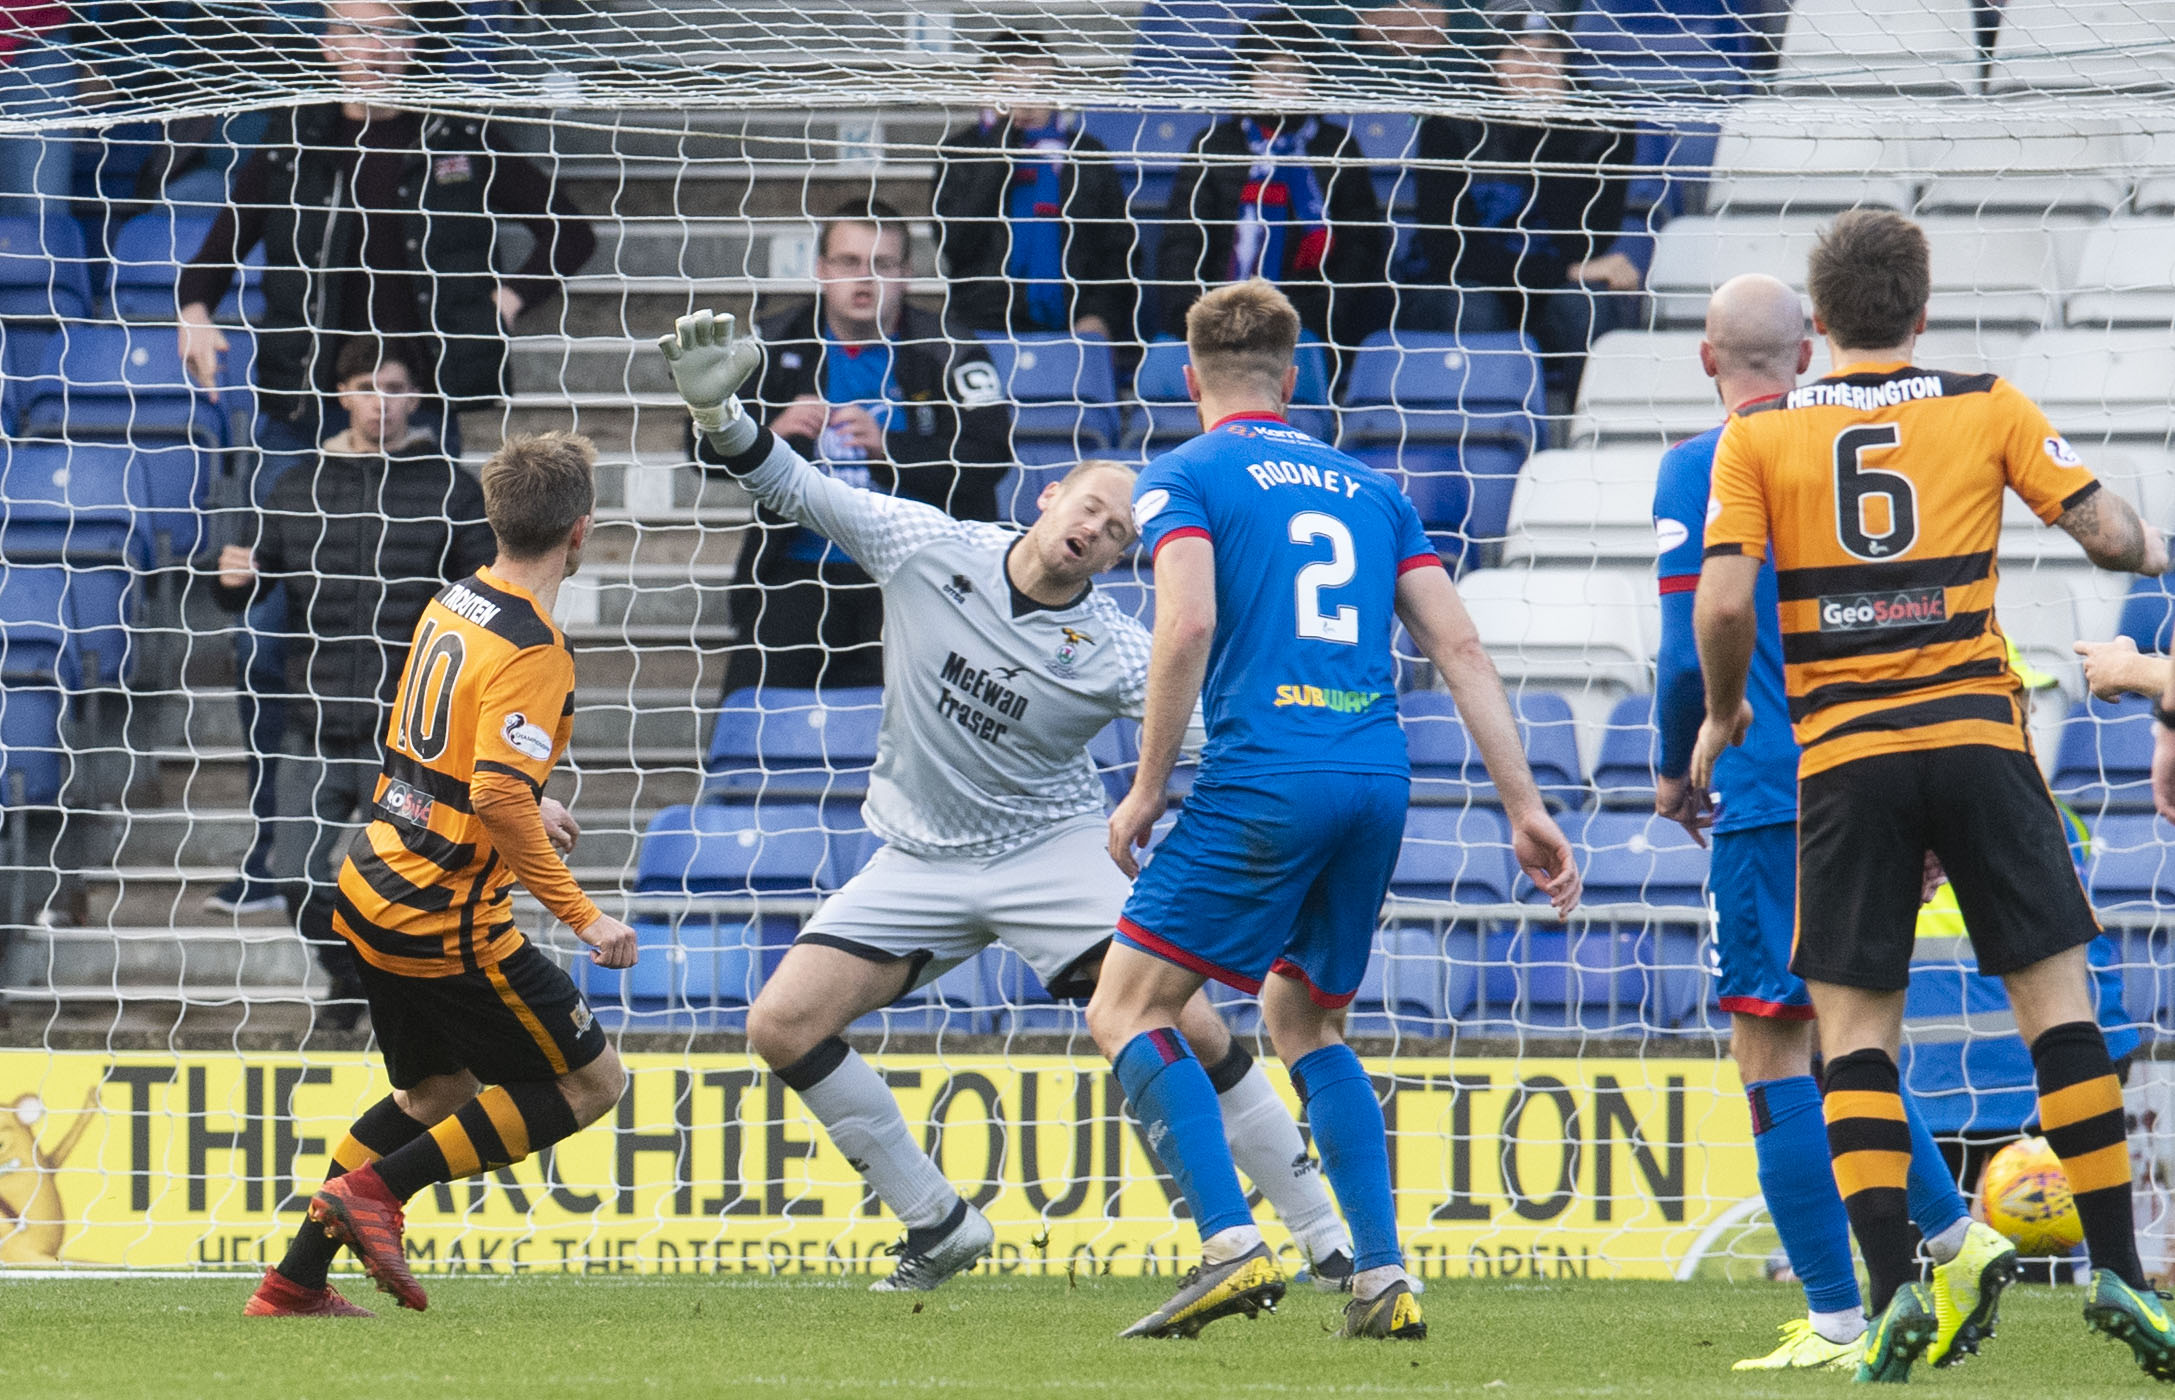 Alloa's Alan Trouten (L) scores to make it 2-2 during the Ladbrokes Championship match between Inverness CT.